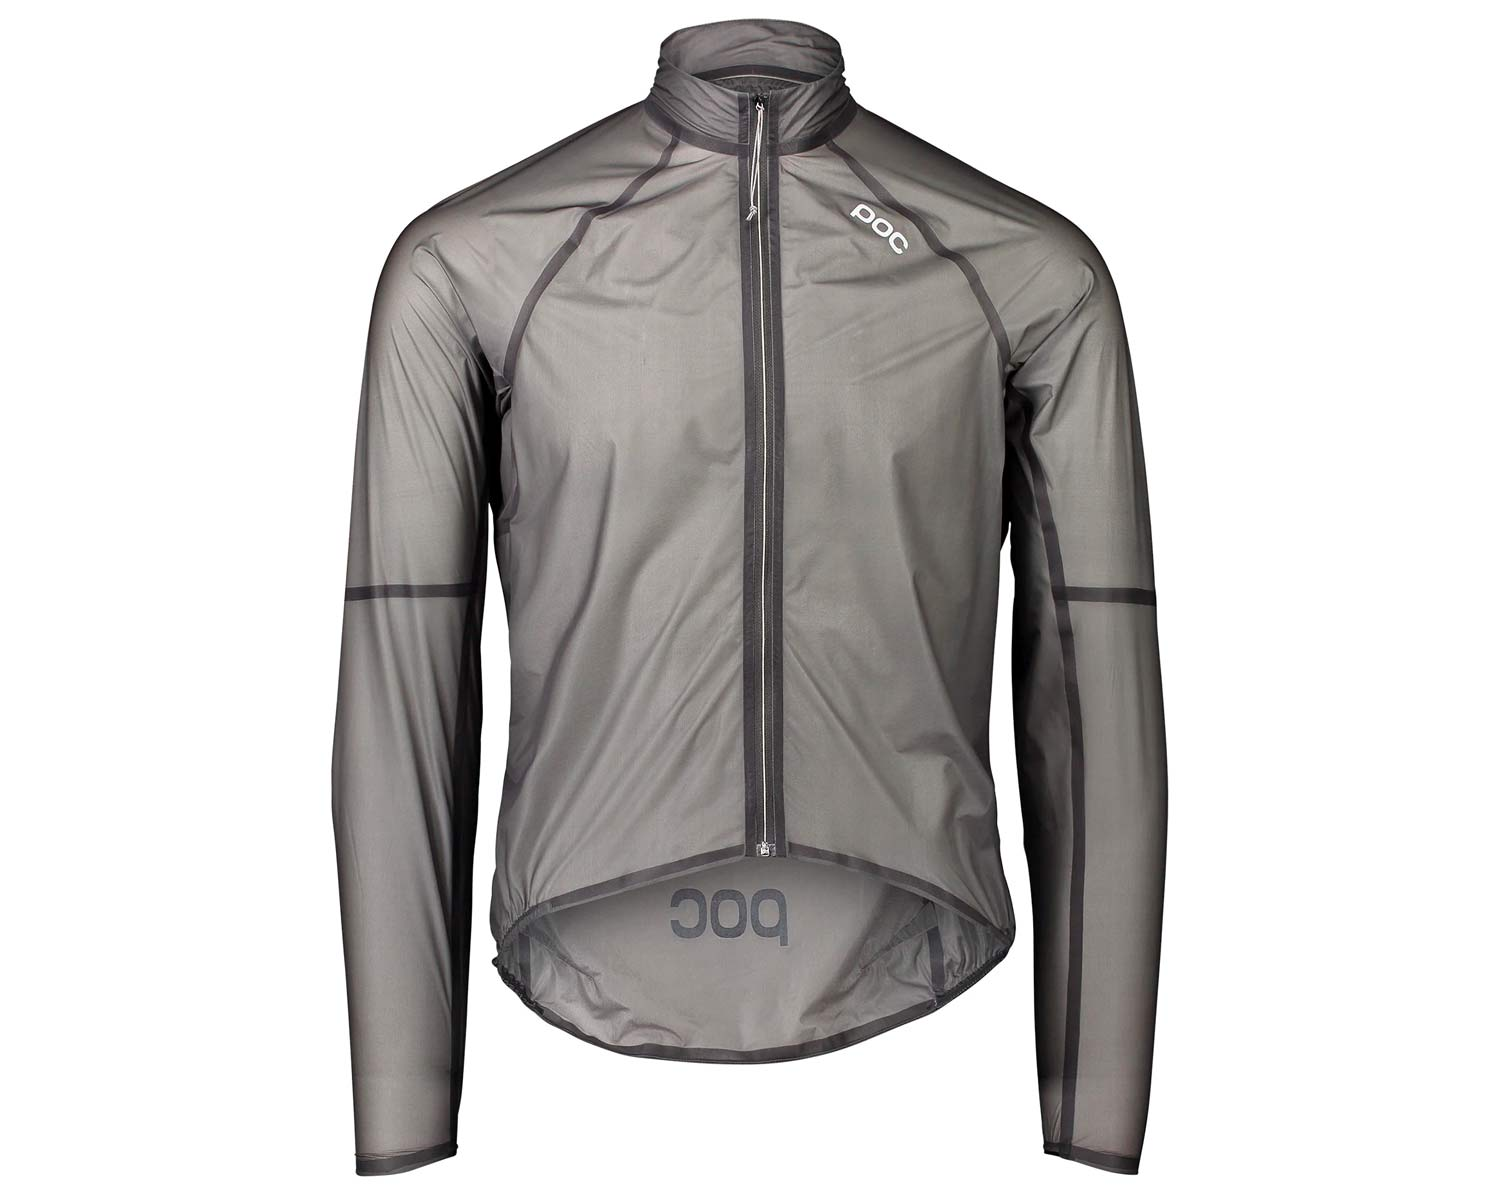 POC Supreme Rain Jacket ultralight 3-layer waterproof protection, front